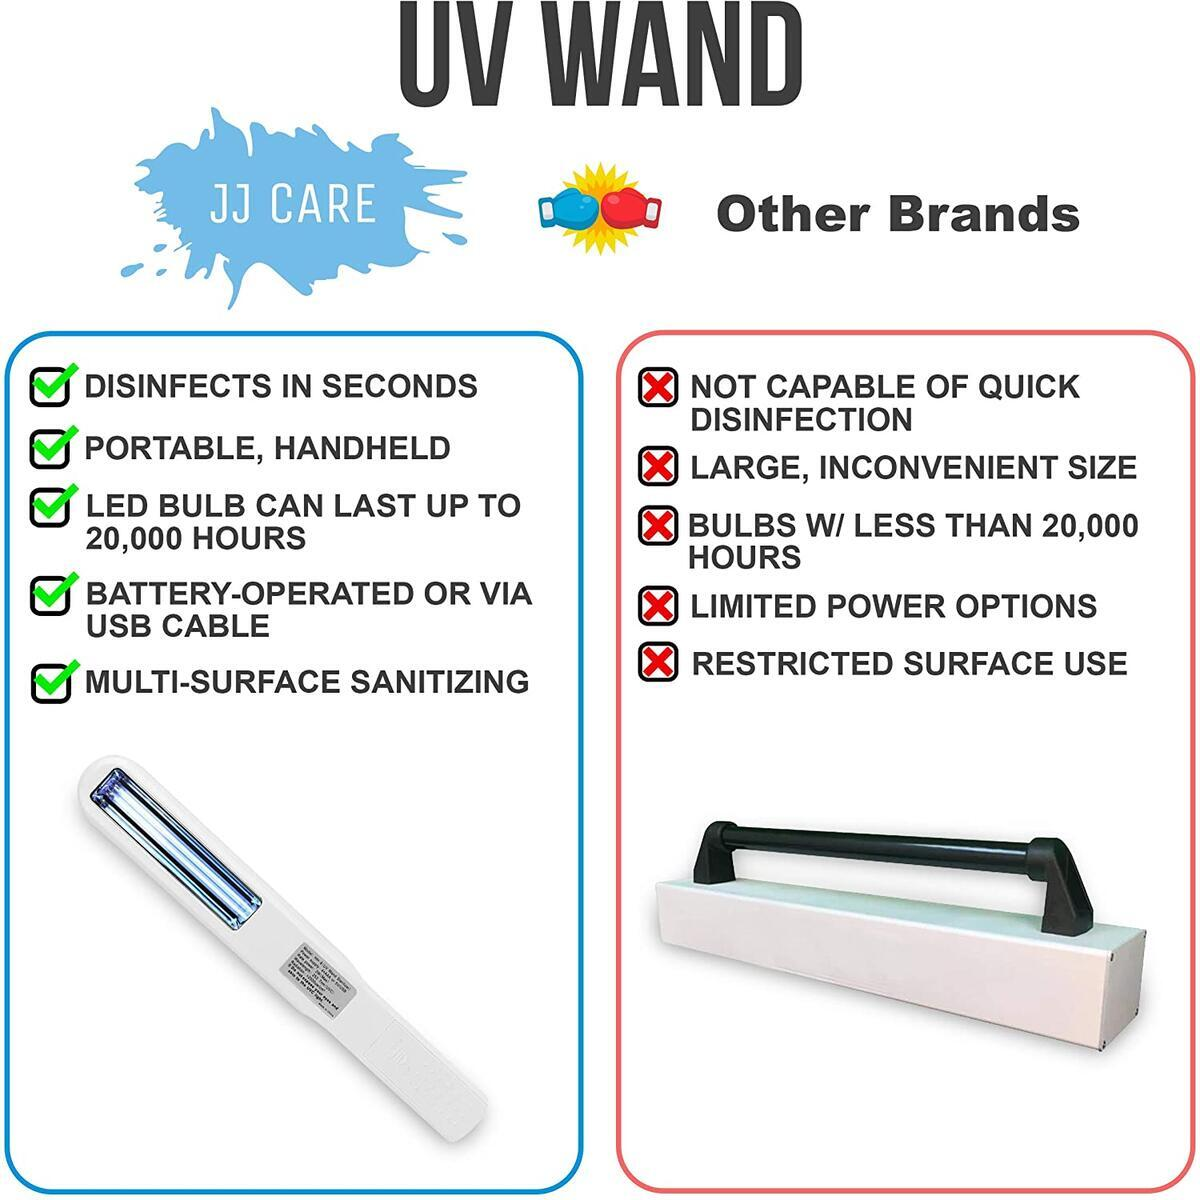 JJ CARE UV Sanitizer Wand, UV Light Wand, UV Sterilizer Wand, Sterilizing Wand, Sanitizing Wand, Disinfection Wand for Travel or Home, Powered by USB Cable or Batteries